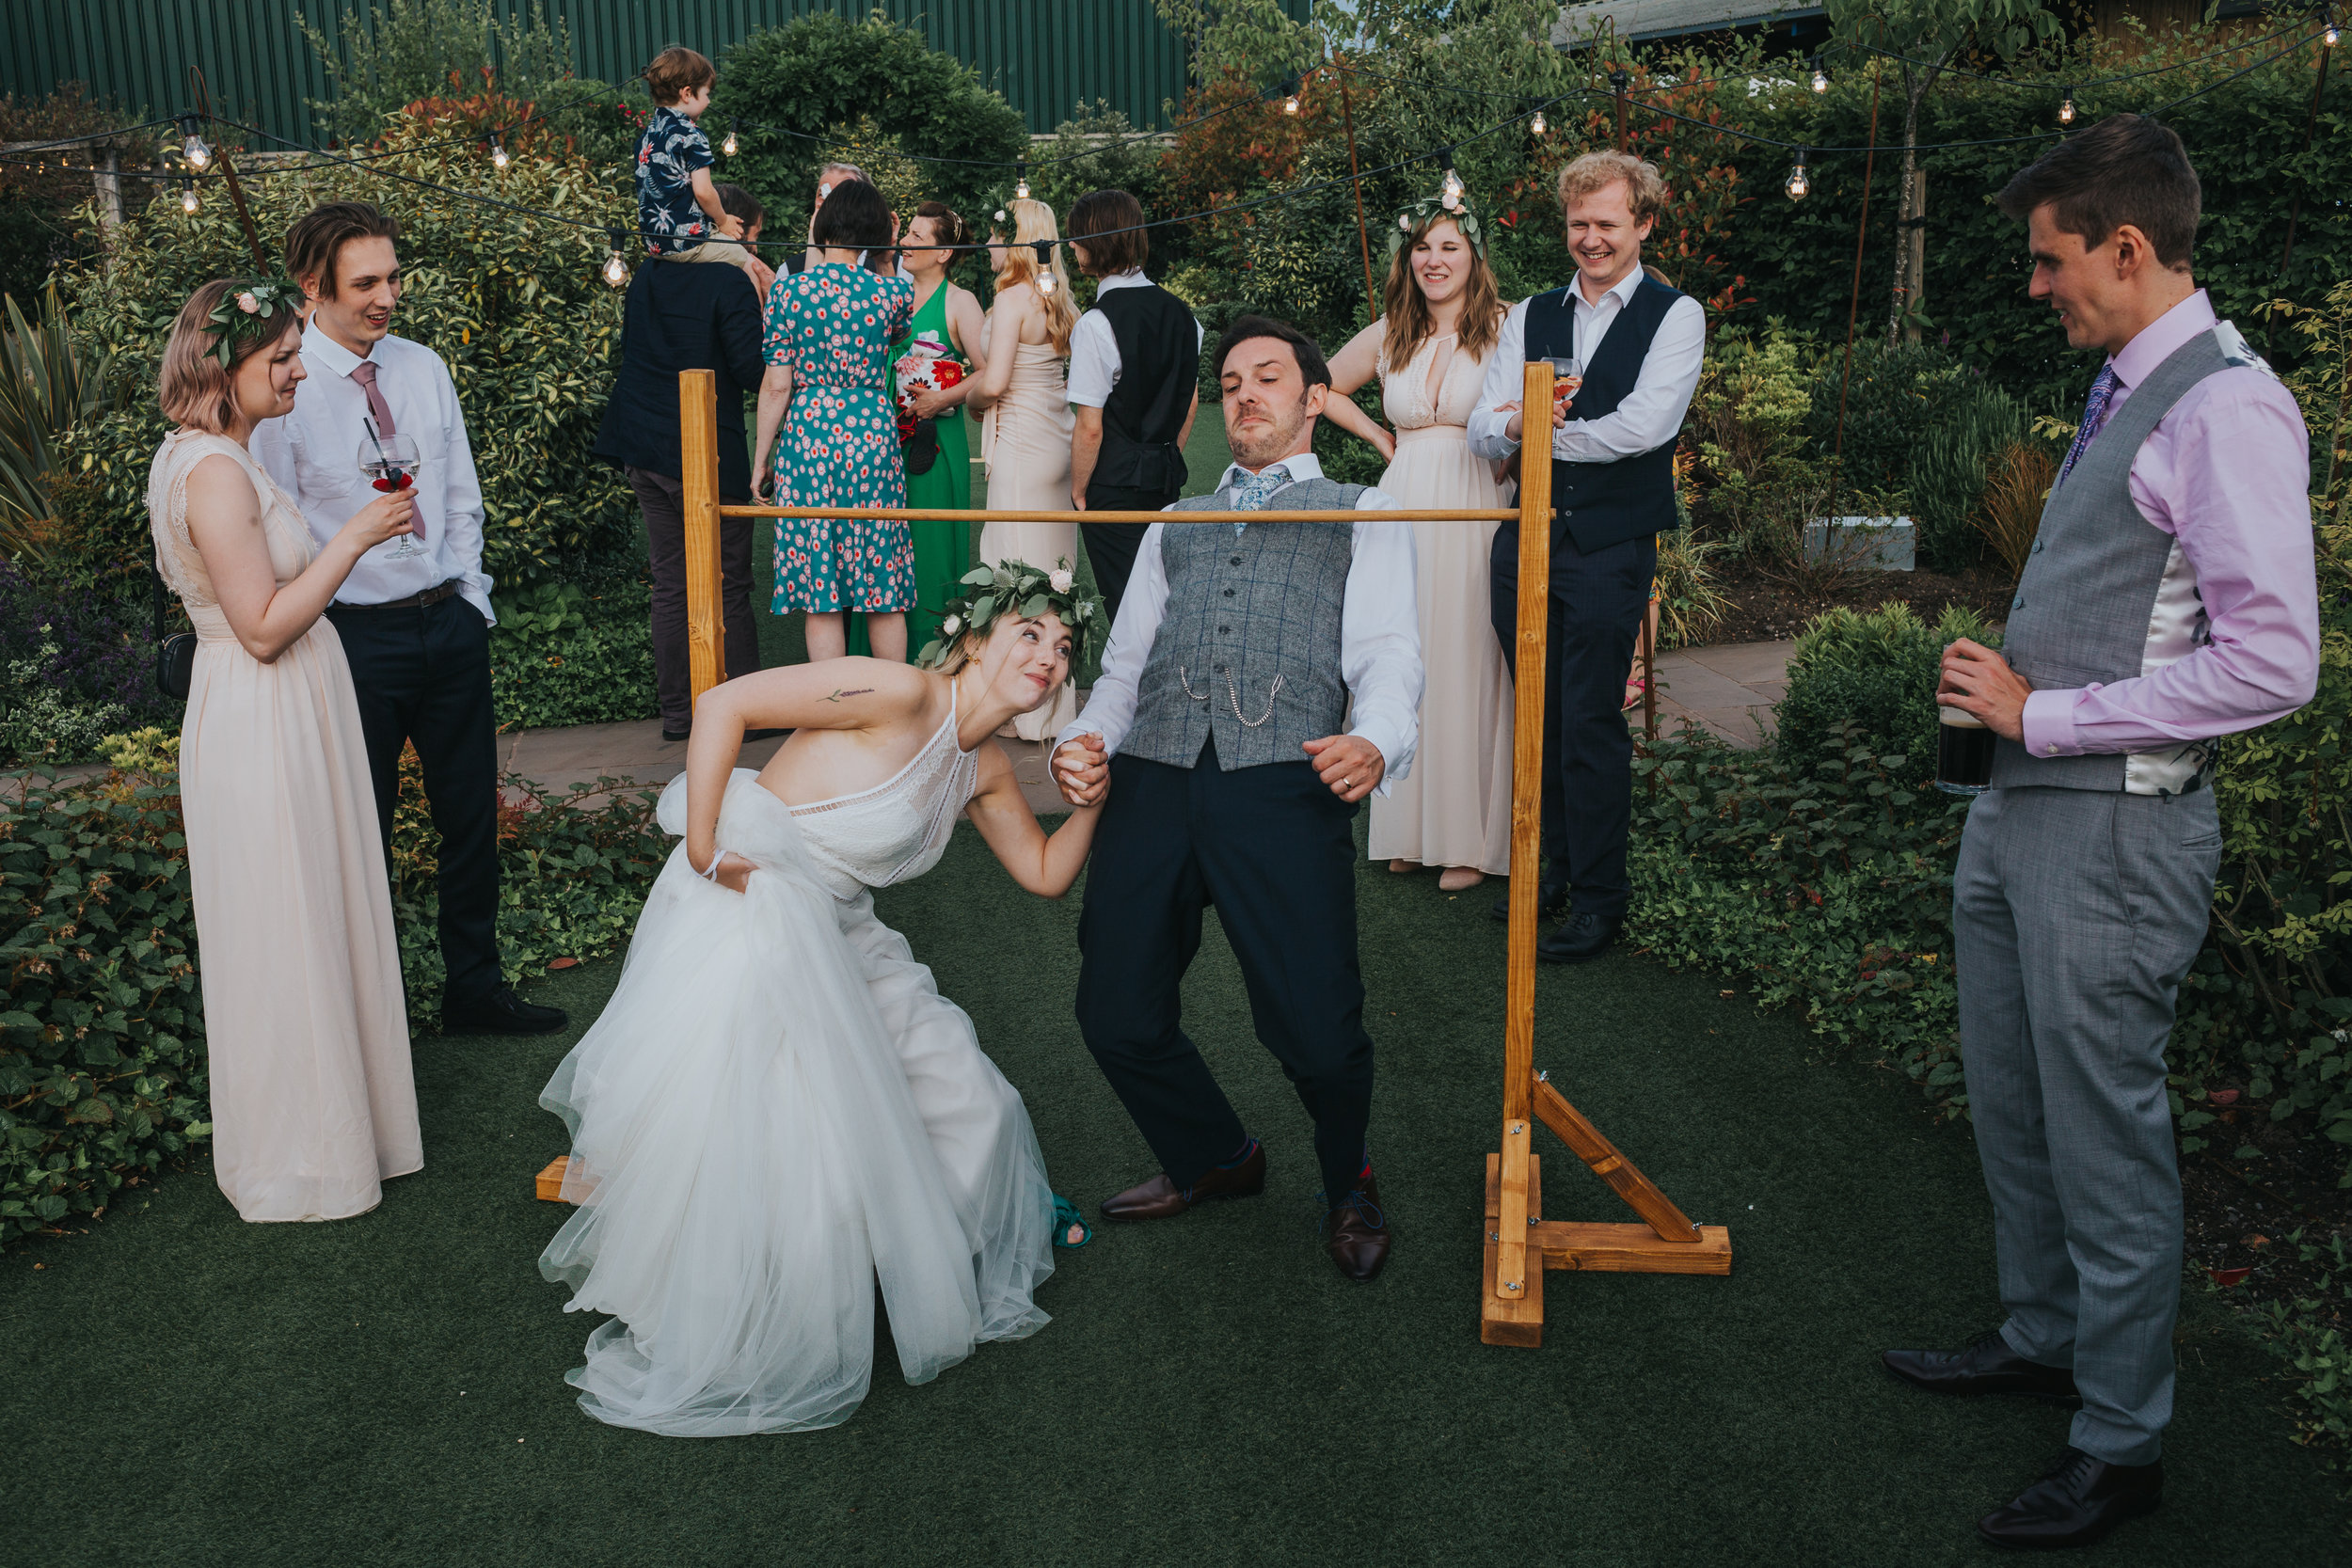 Bride and groom try and limbo together. It doesn't really work.